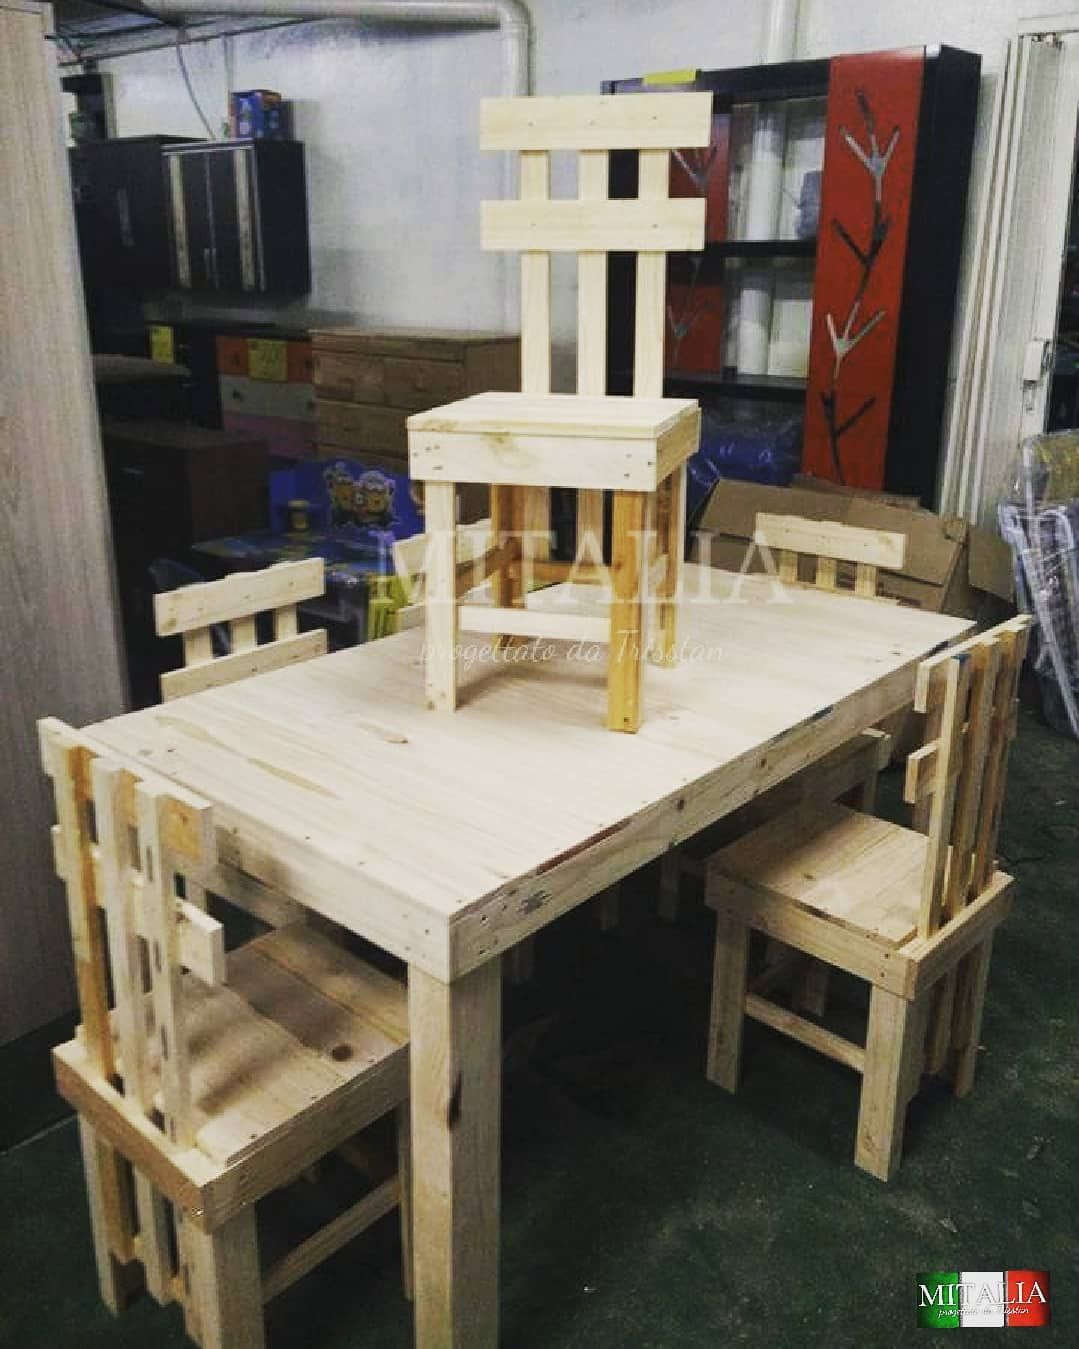 Diy Recycled Wooden Pallet Chair Design Pallet Chair Pallet Furniture Luxury Office Chairs